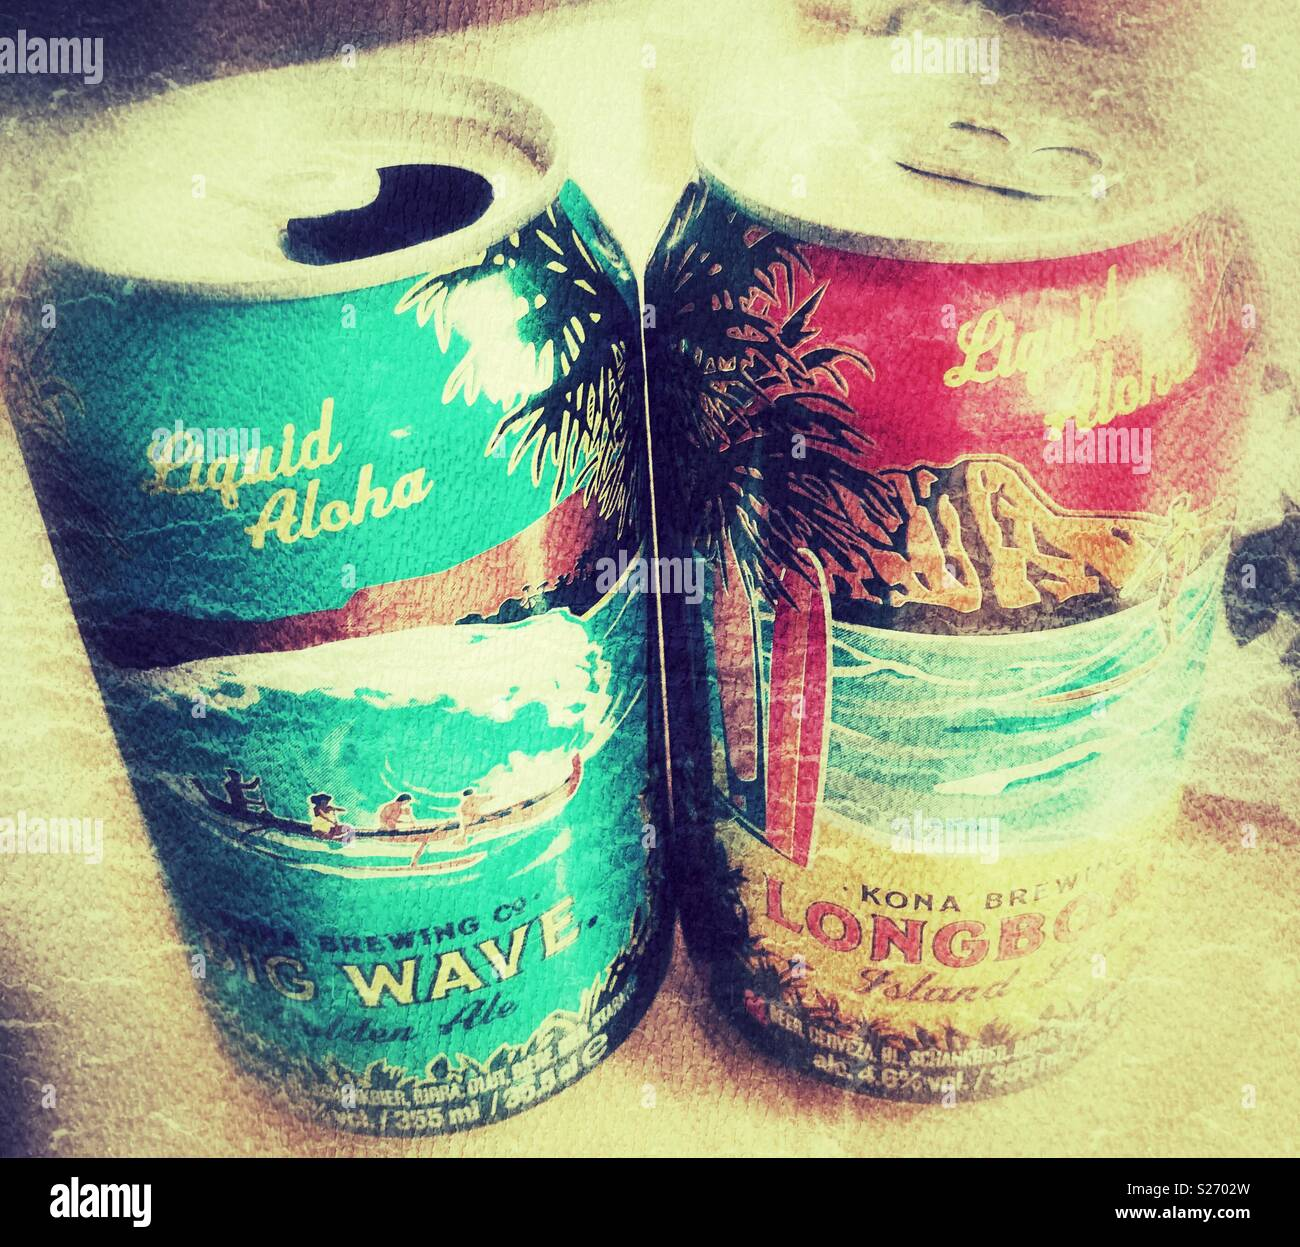 Two cans of Kona beer on a table - one open, one still closed. - Stock Image